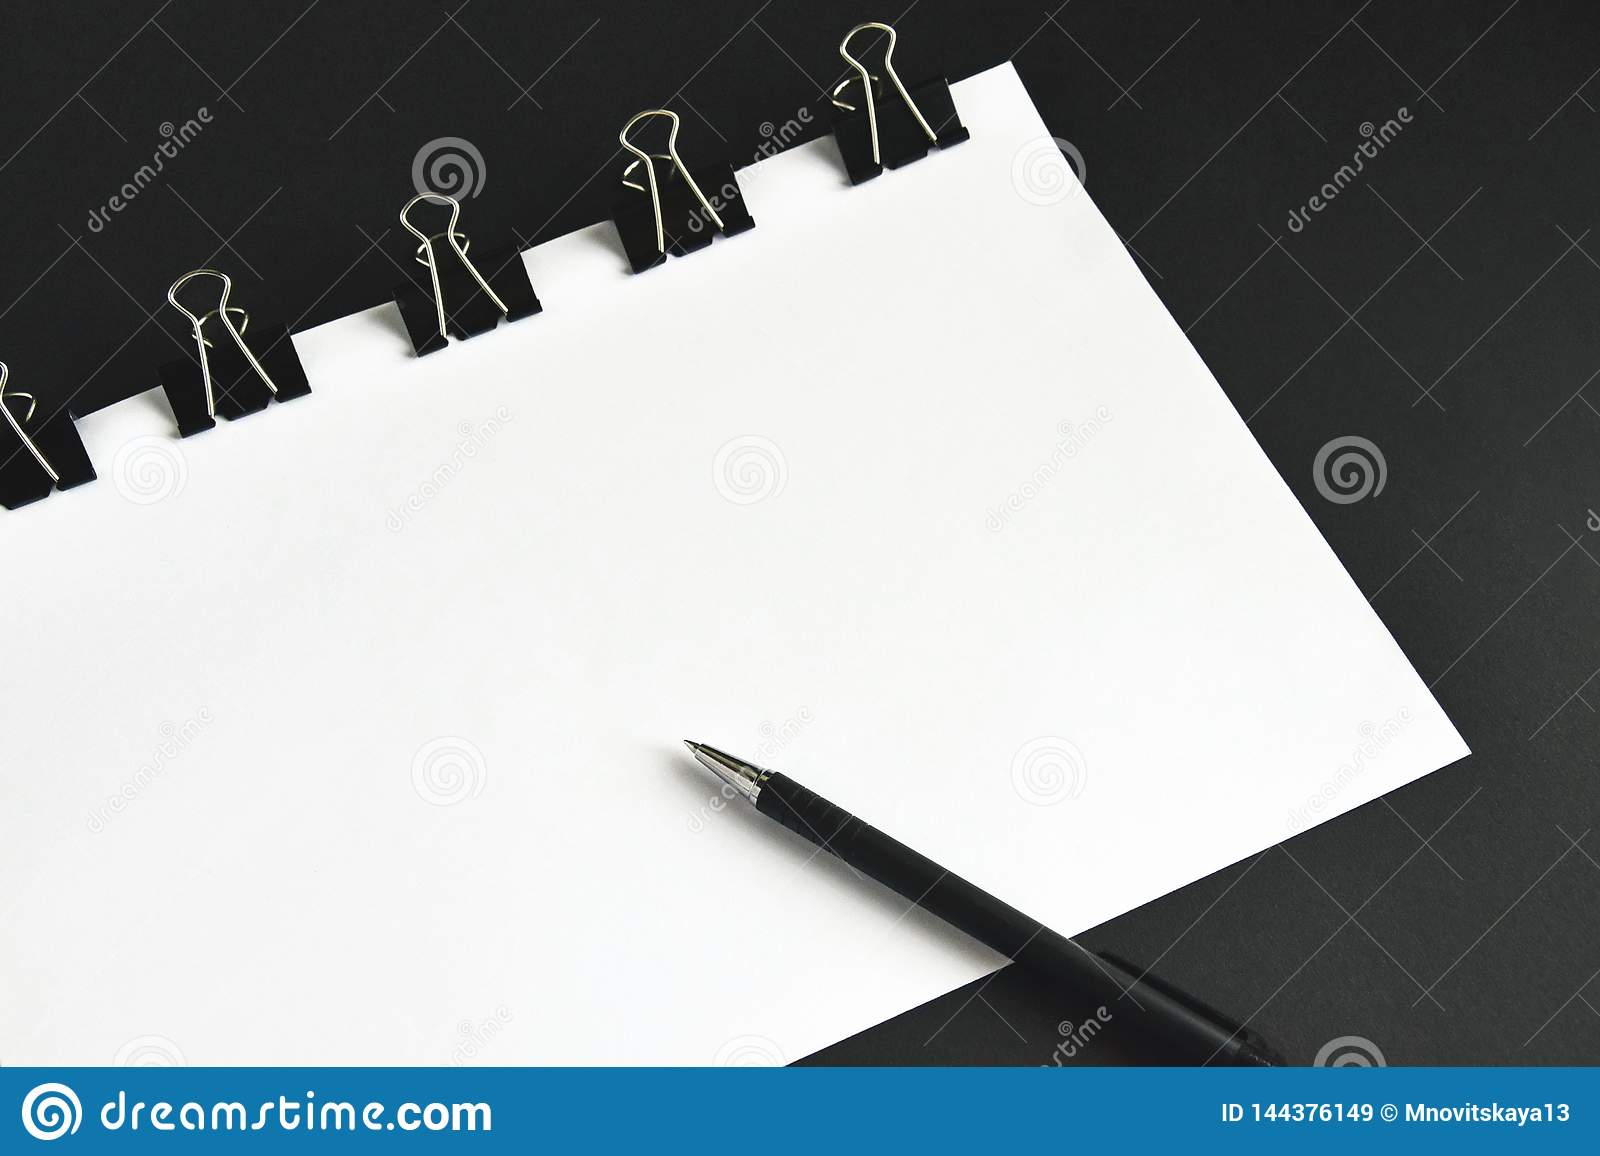 Office accessories, white sheets, pen and binder clip